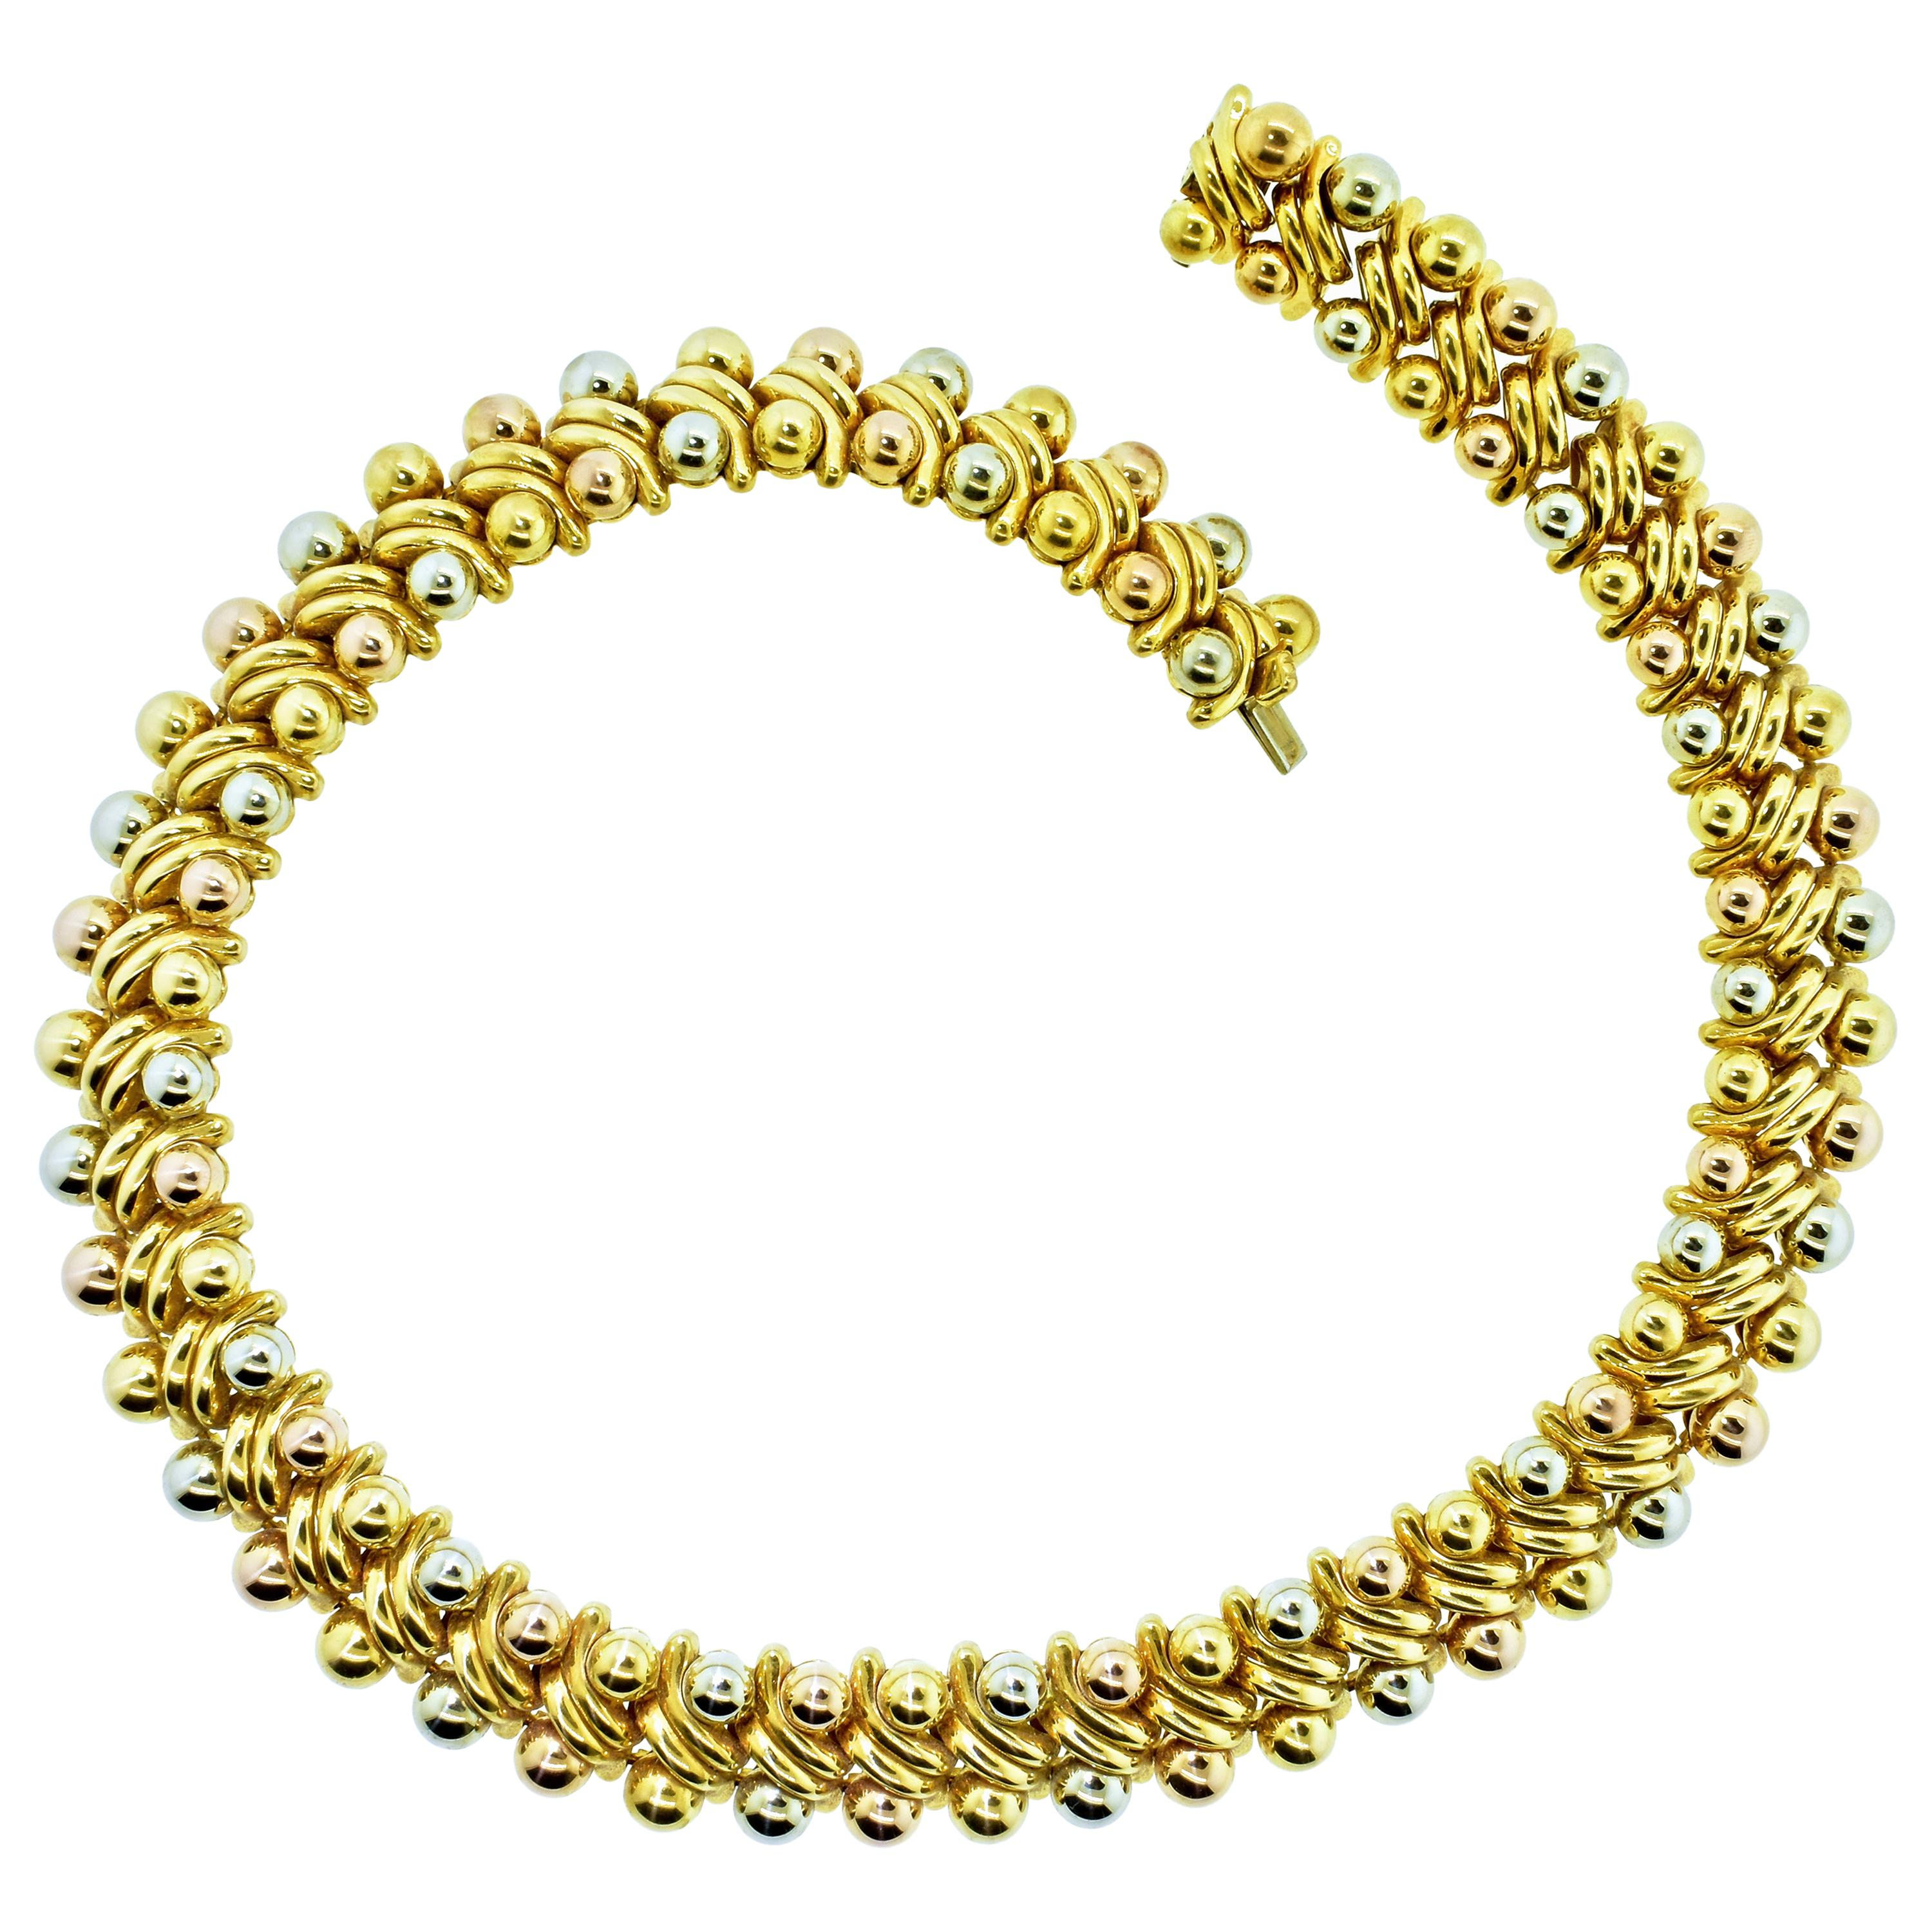 Bvlgari 18K Yellow, Pink and White Gold Vintage Necklace